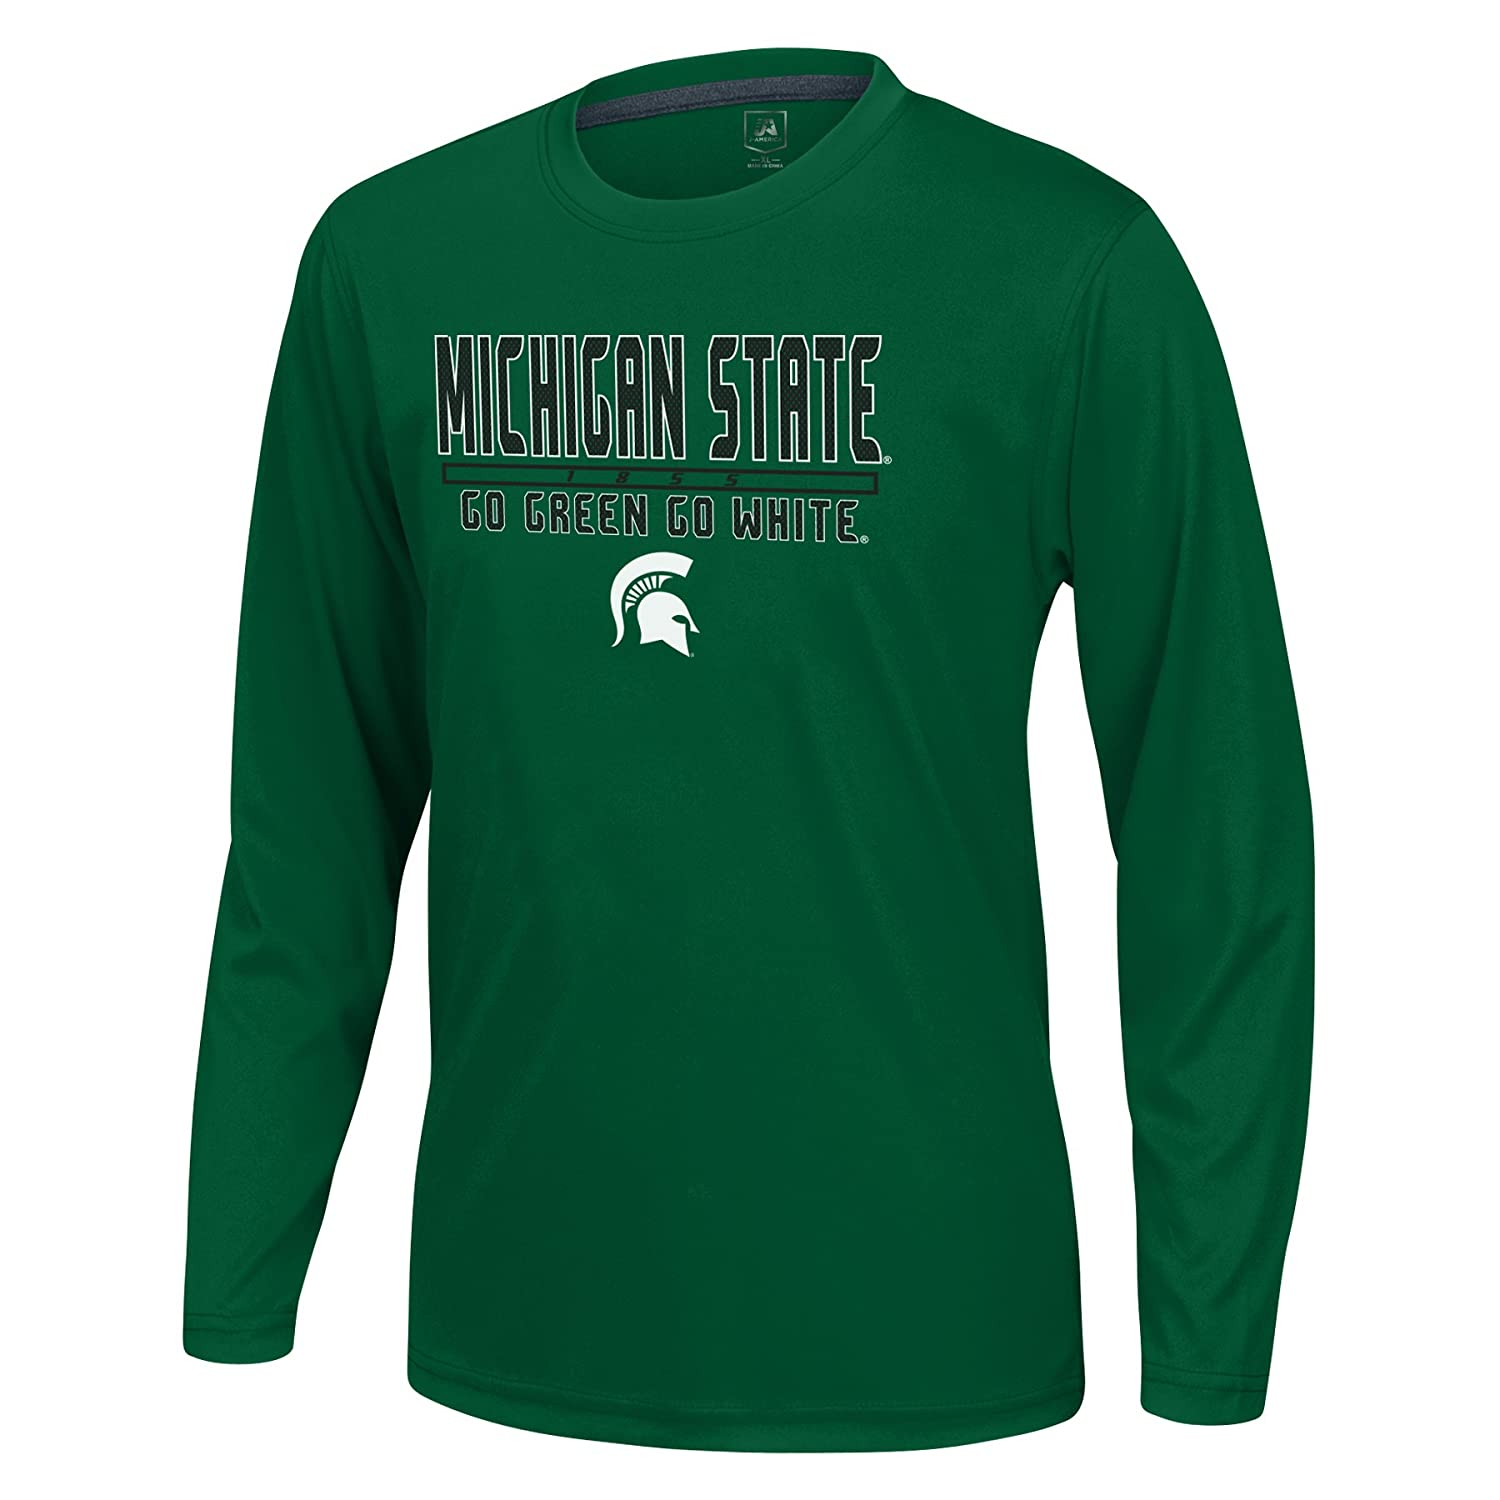 J America NCAA Michigan State Spartans Boys Youth School Slogan Long Sleeve Callout Poly Tee Green Medium